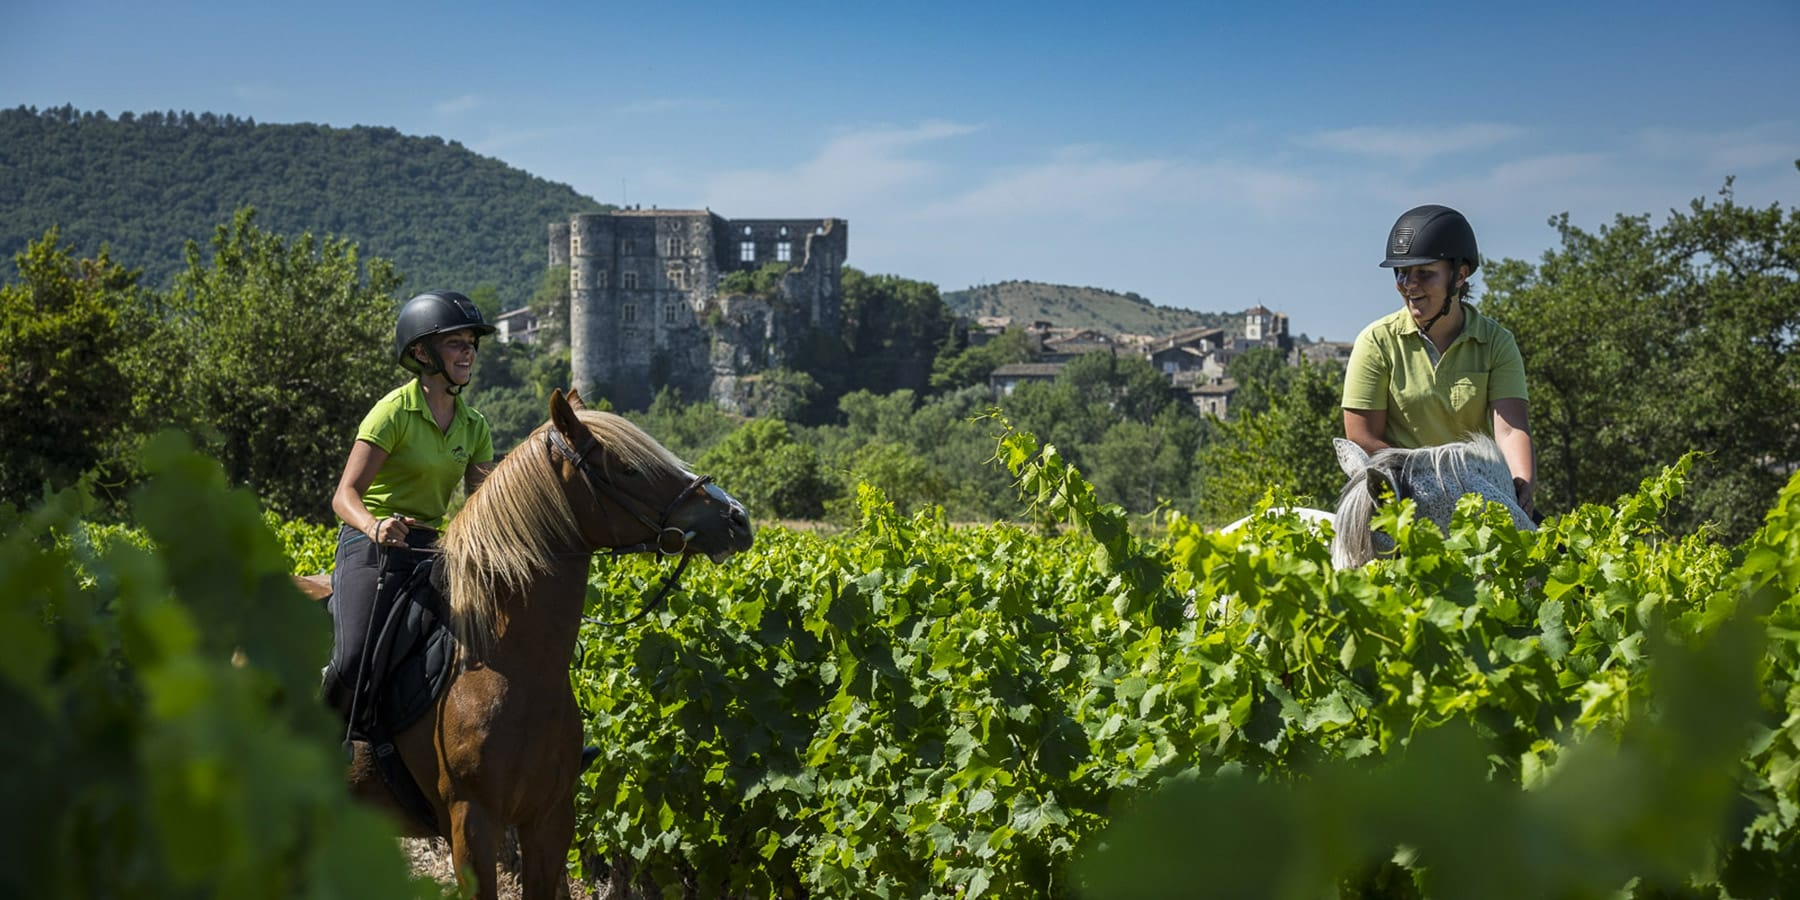 Alba-chateau-cheval-equitation-vignes_1800x900_acf_cropped